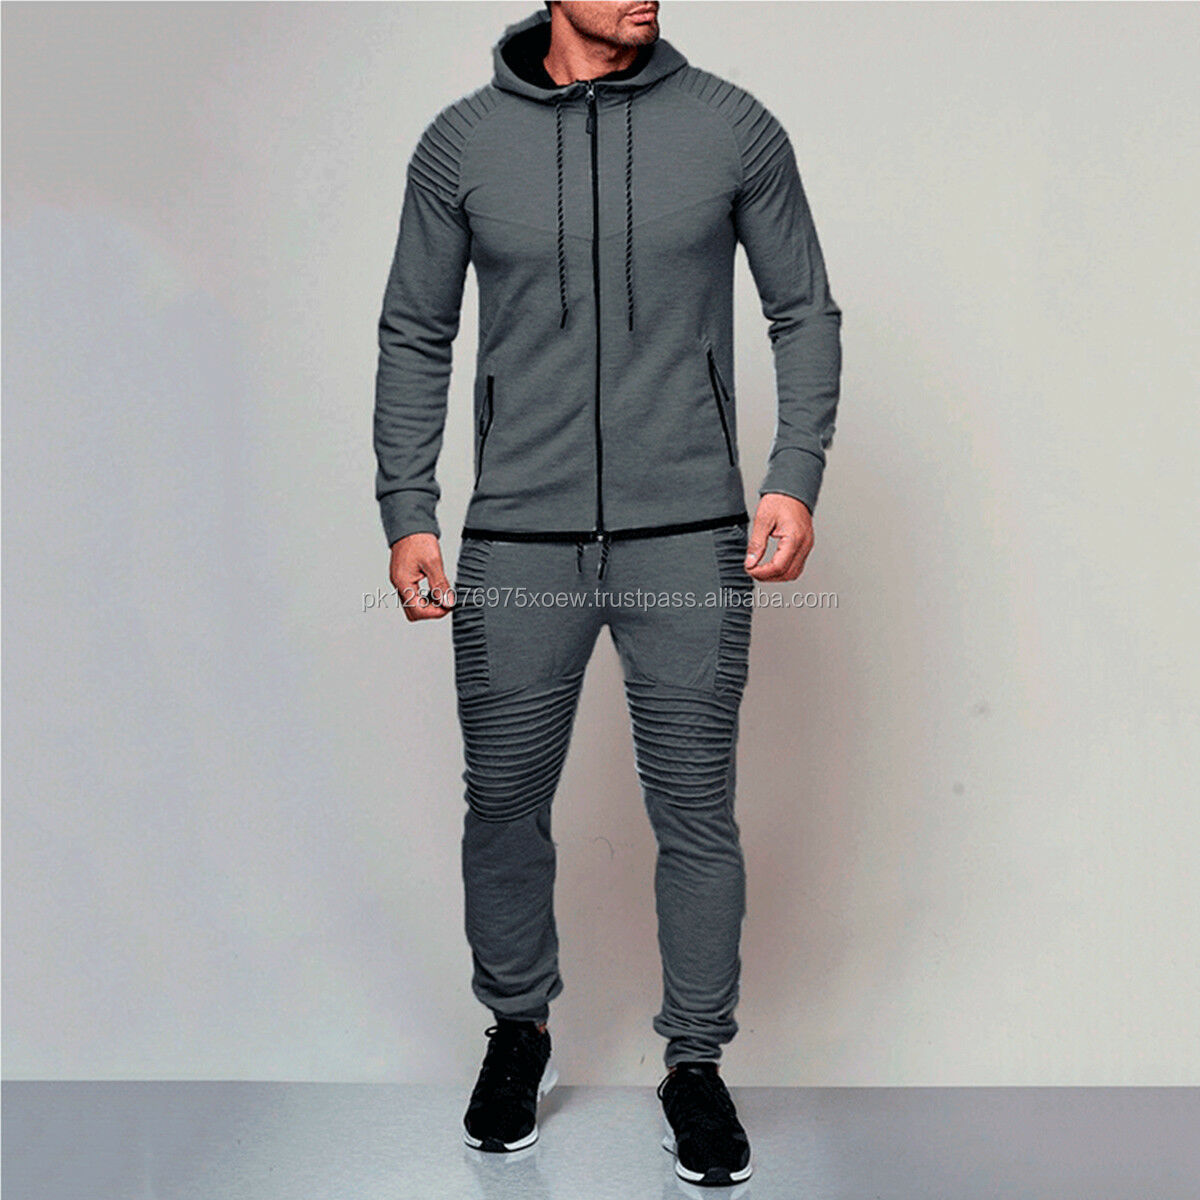 custom 2019 OEM Sportswear Gym Popular Tracksuit, Blank Sets Training Center Sportswear Men Tracksuit, Popular Blank Men Slim Fi